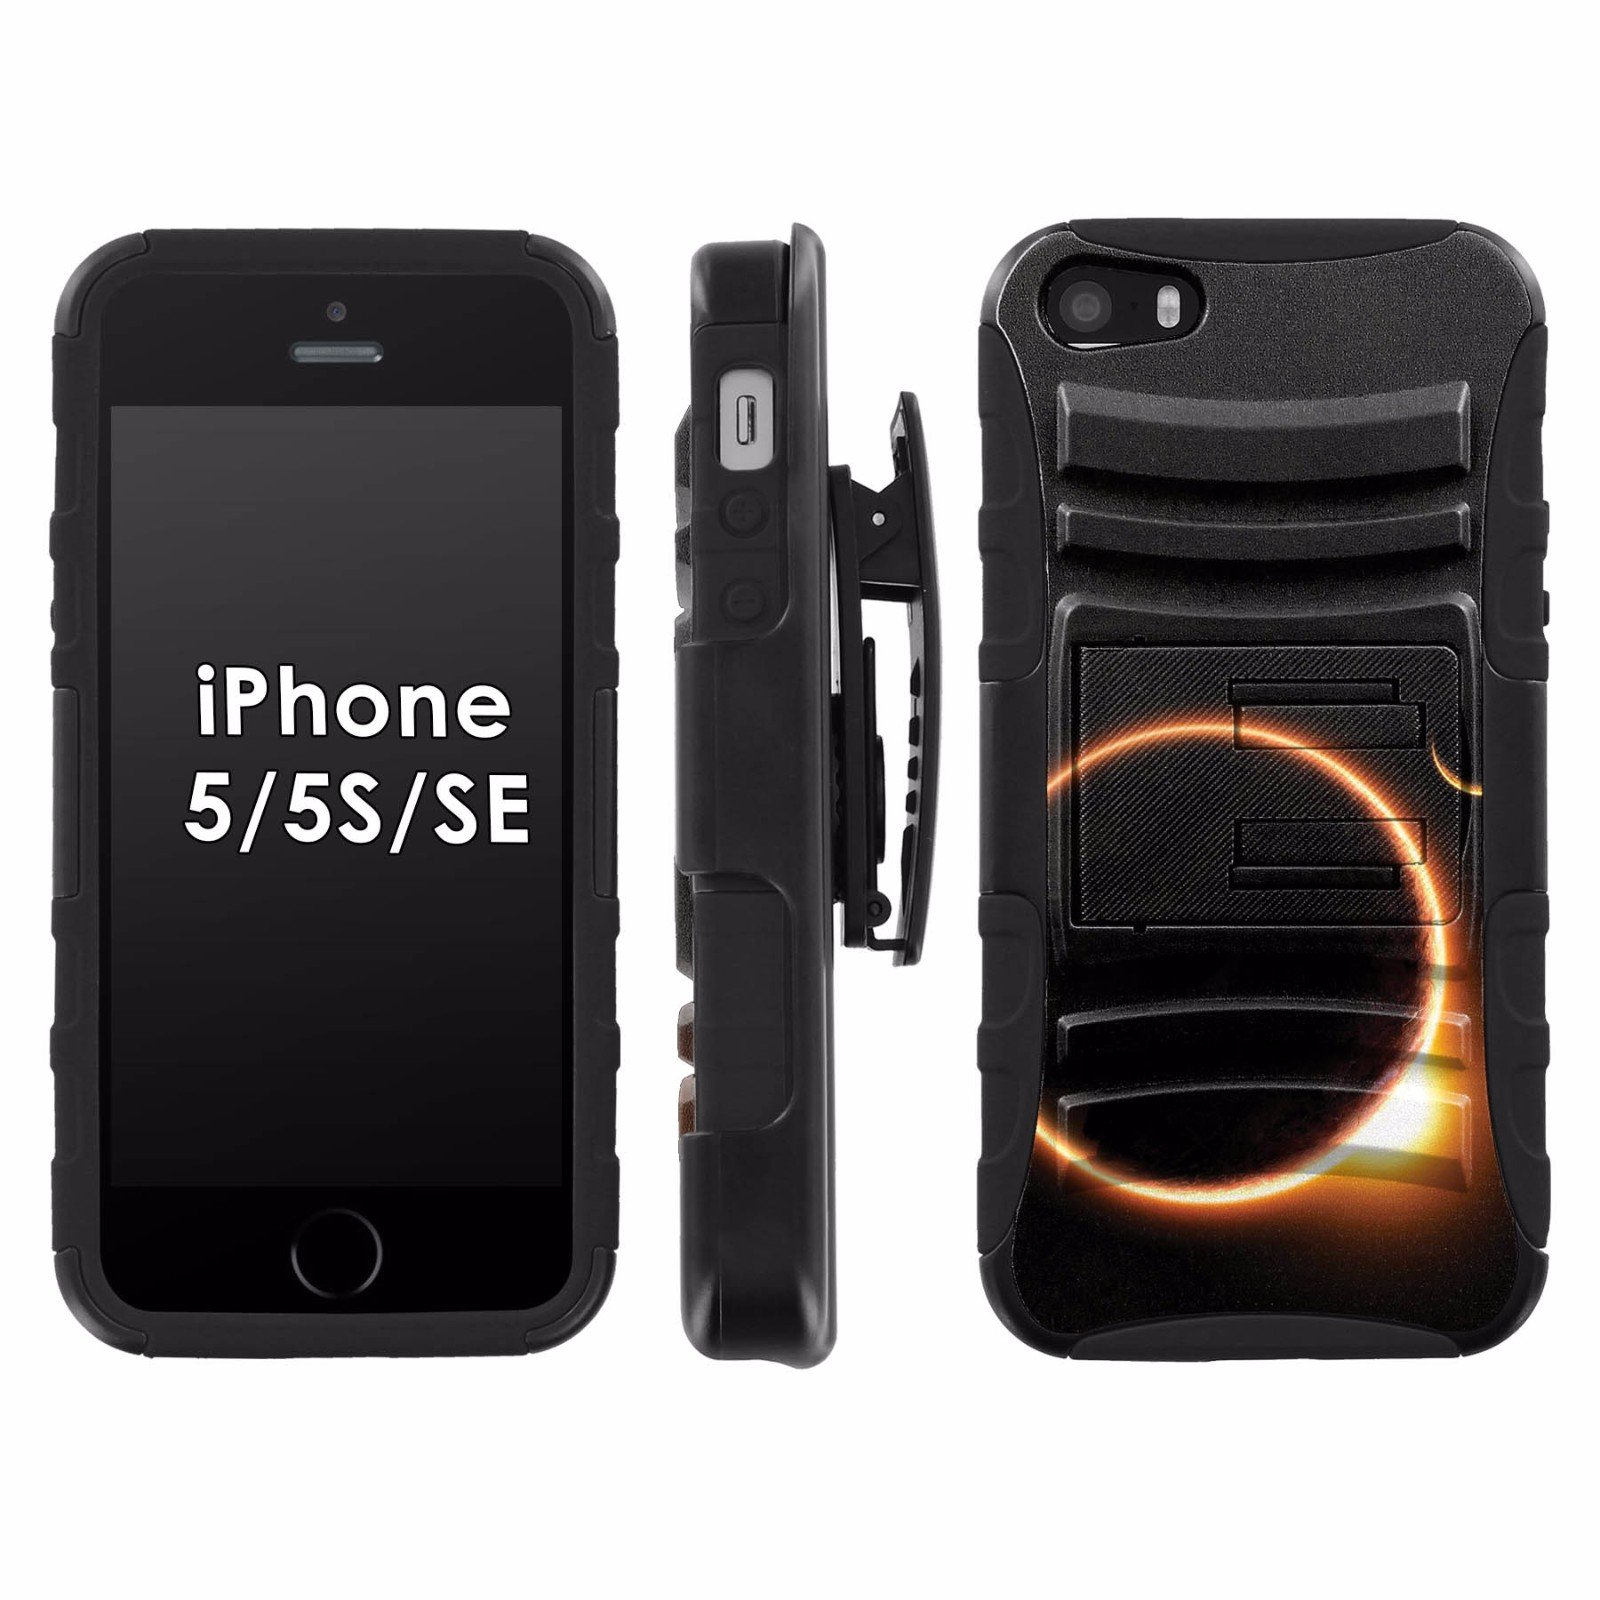 iPhone SE / 5 / 5S Phone Cover, Solar Eclipse- Black Blitz Hybrid Armor Phone Case for [iPhone SE / 5 / 5S] with [Kickstand and Holster]